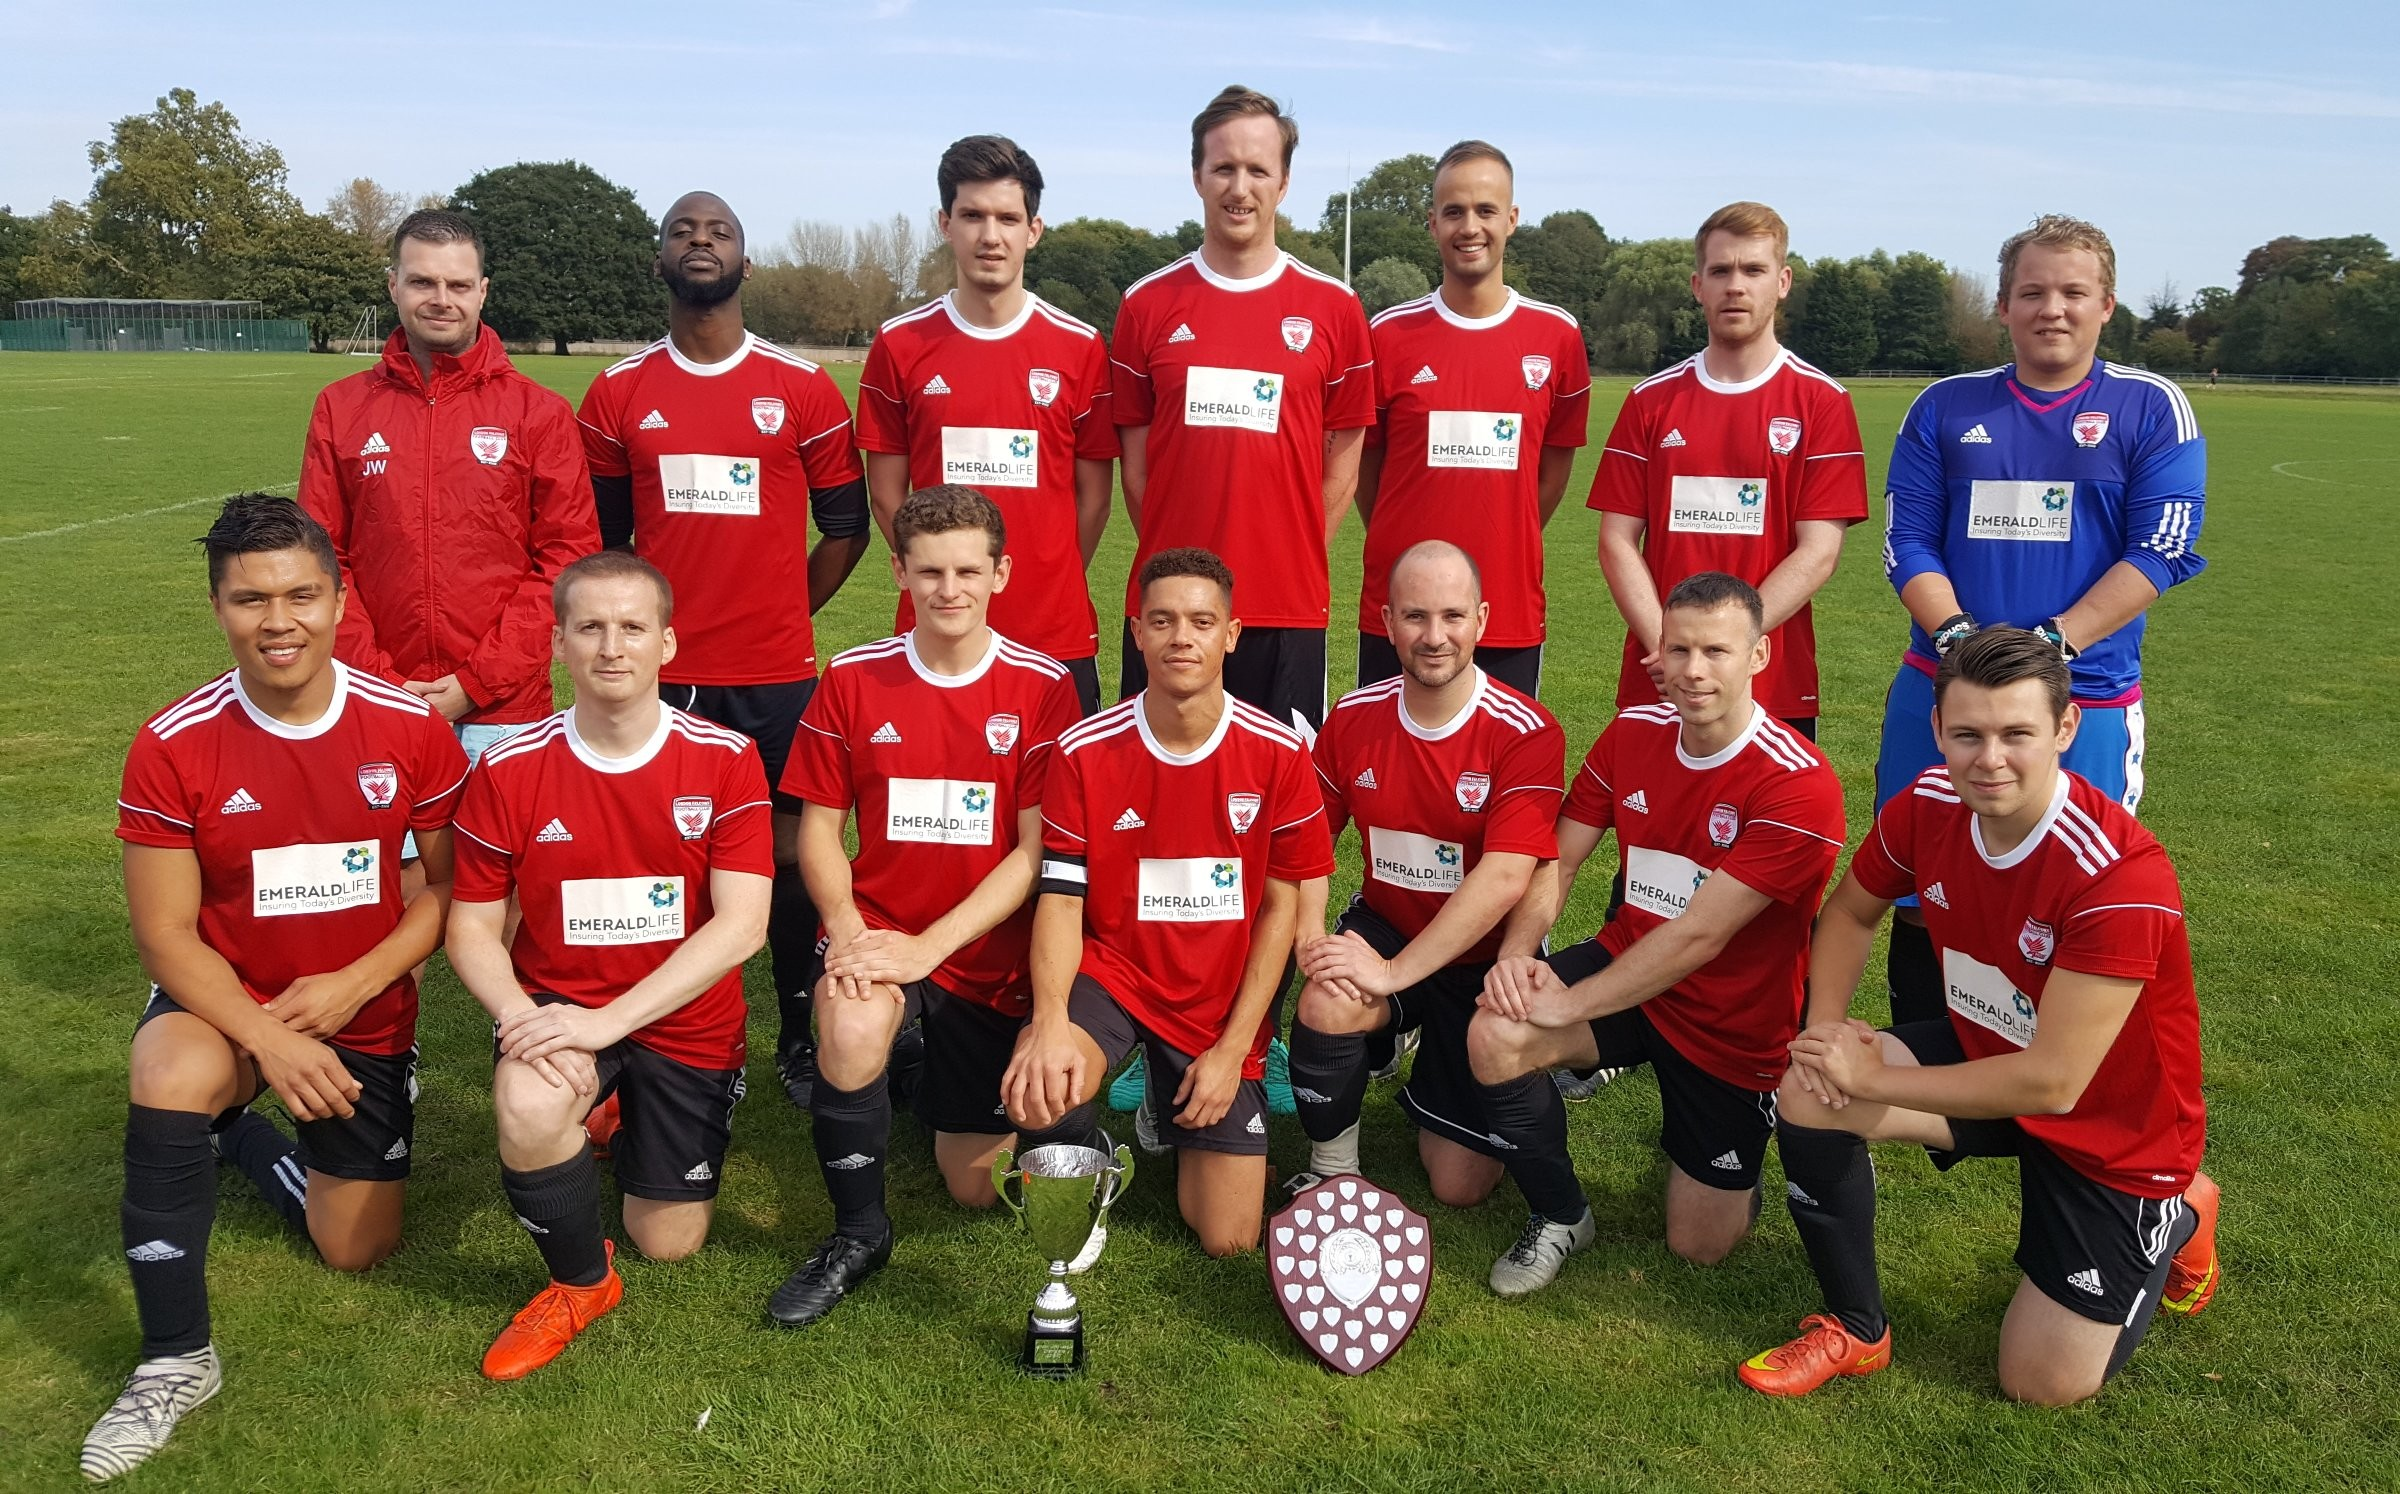 London Falcons Football Club - Gay-friendly football team London a5a85ac3ae8